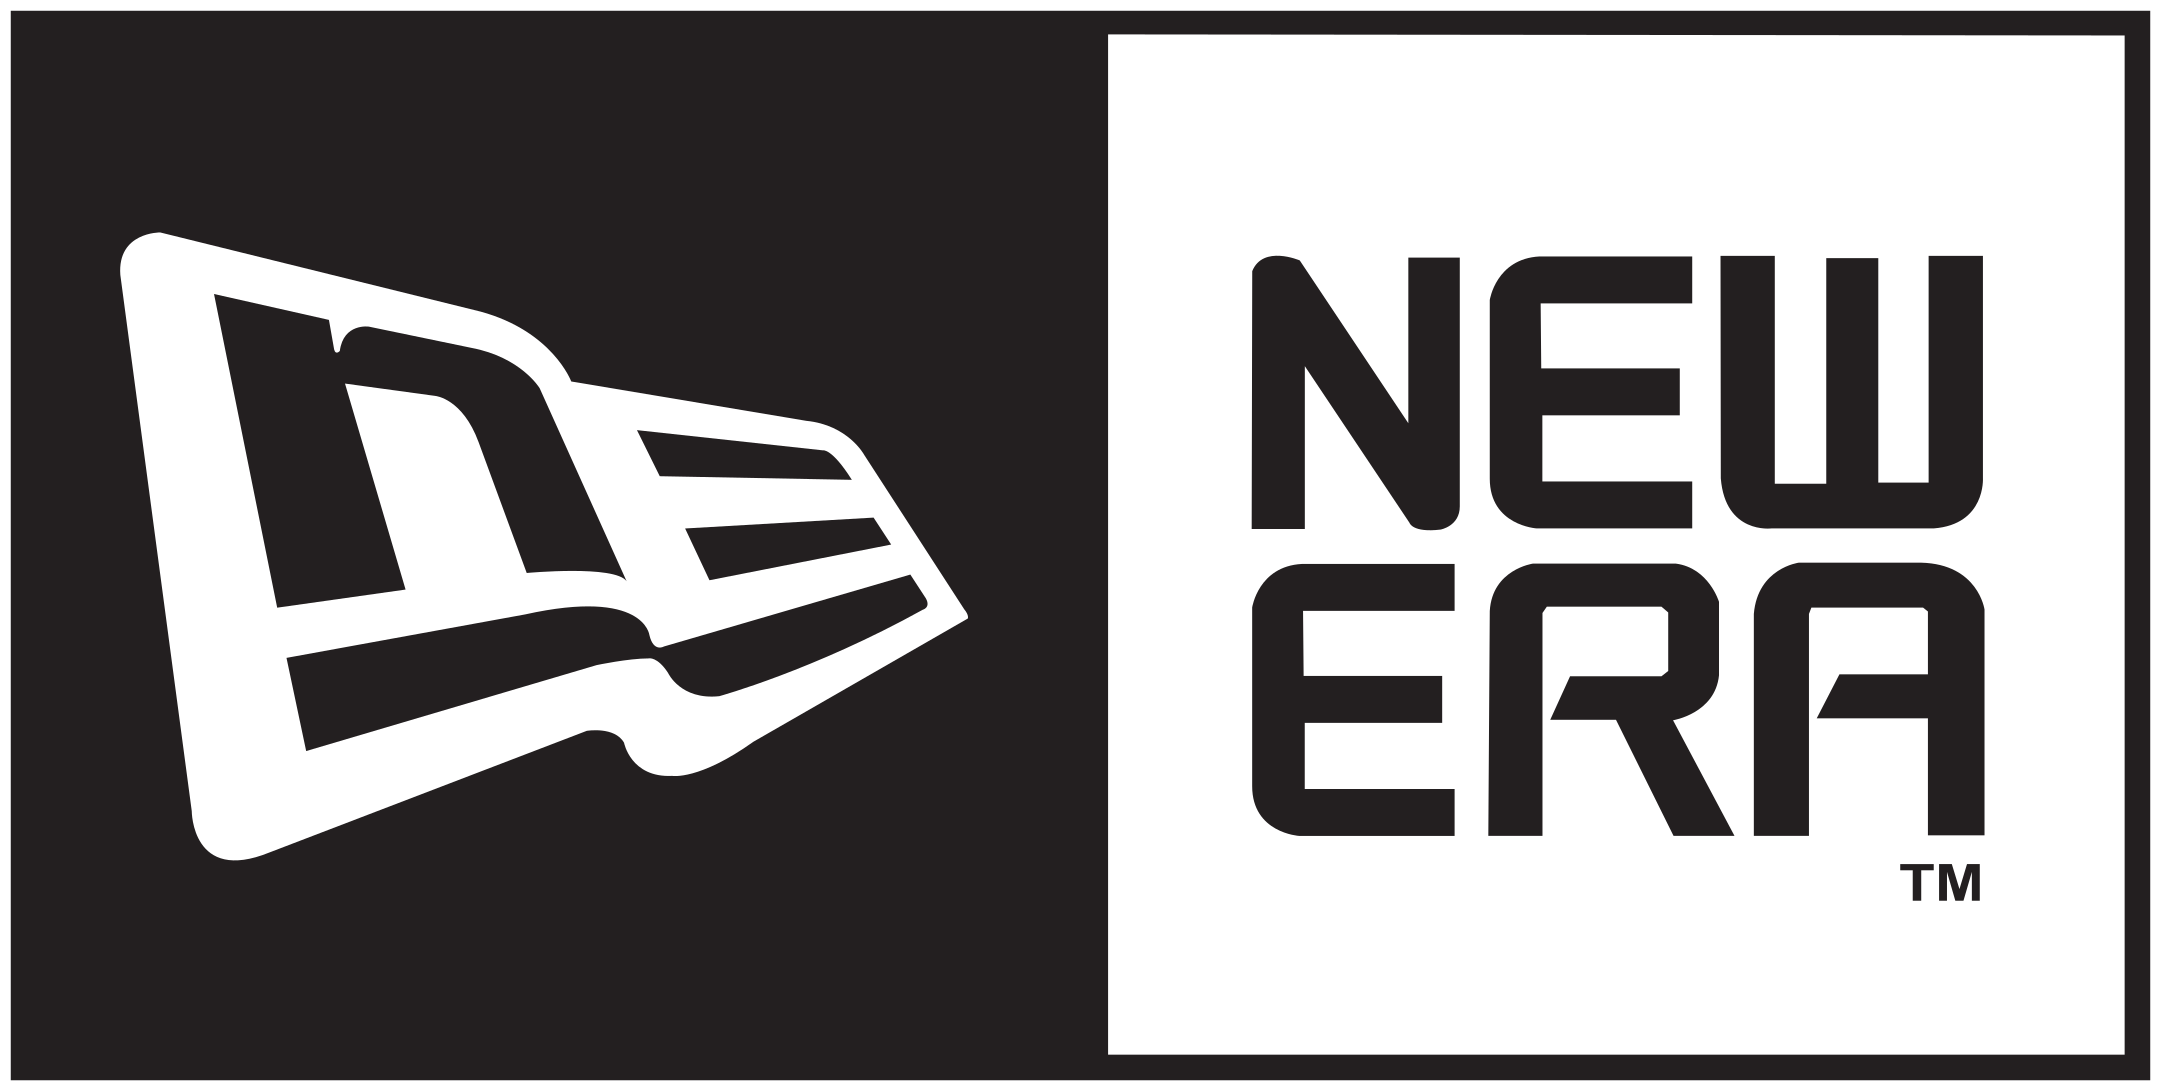 new era logo 1 - New Era Logo